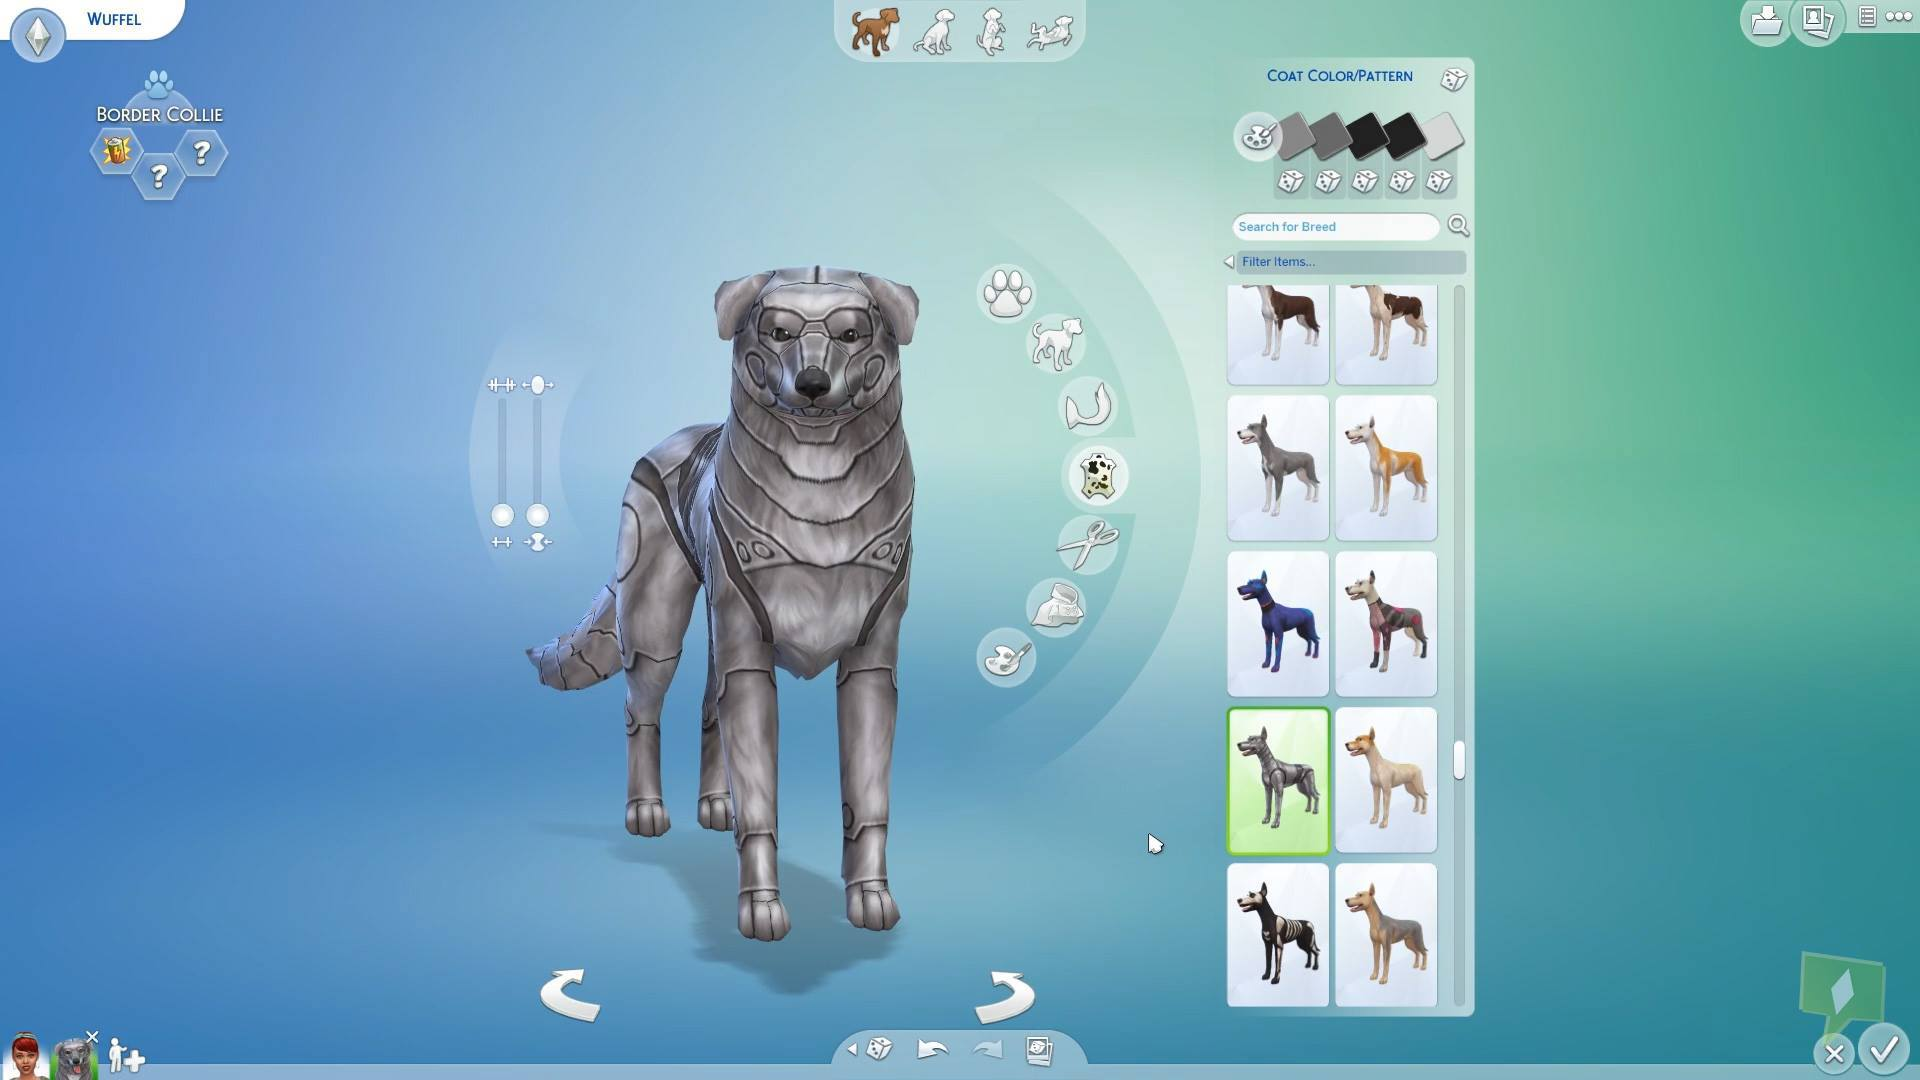 How To Breed Your Dog On Sims